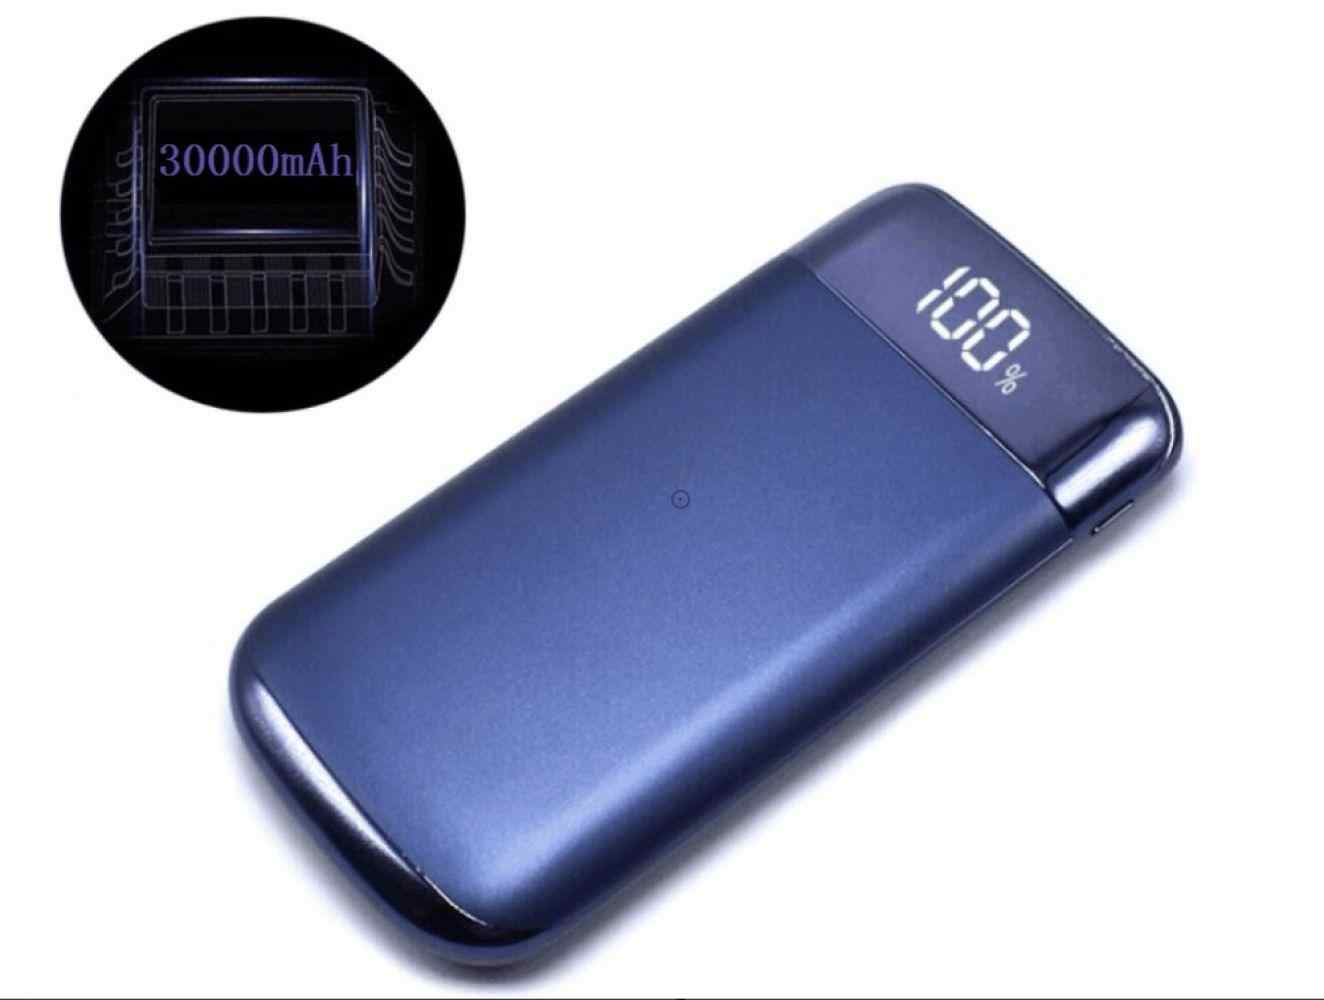 Hot Power Bank 30000mah External LCD Charger Portable Powerbank 2USB Poverbank Mobile Phone Battery Bank 18650 For Xiaomi Huawei